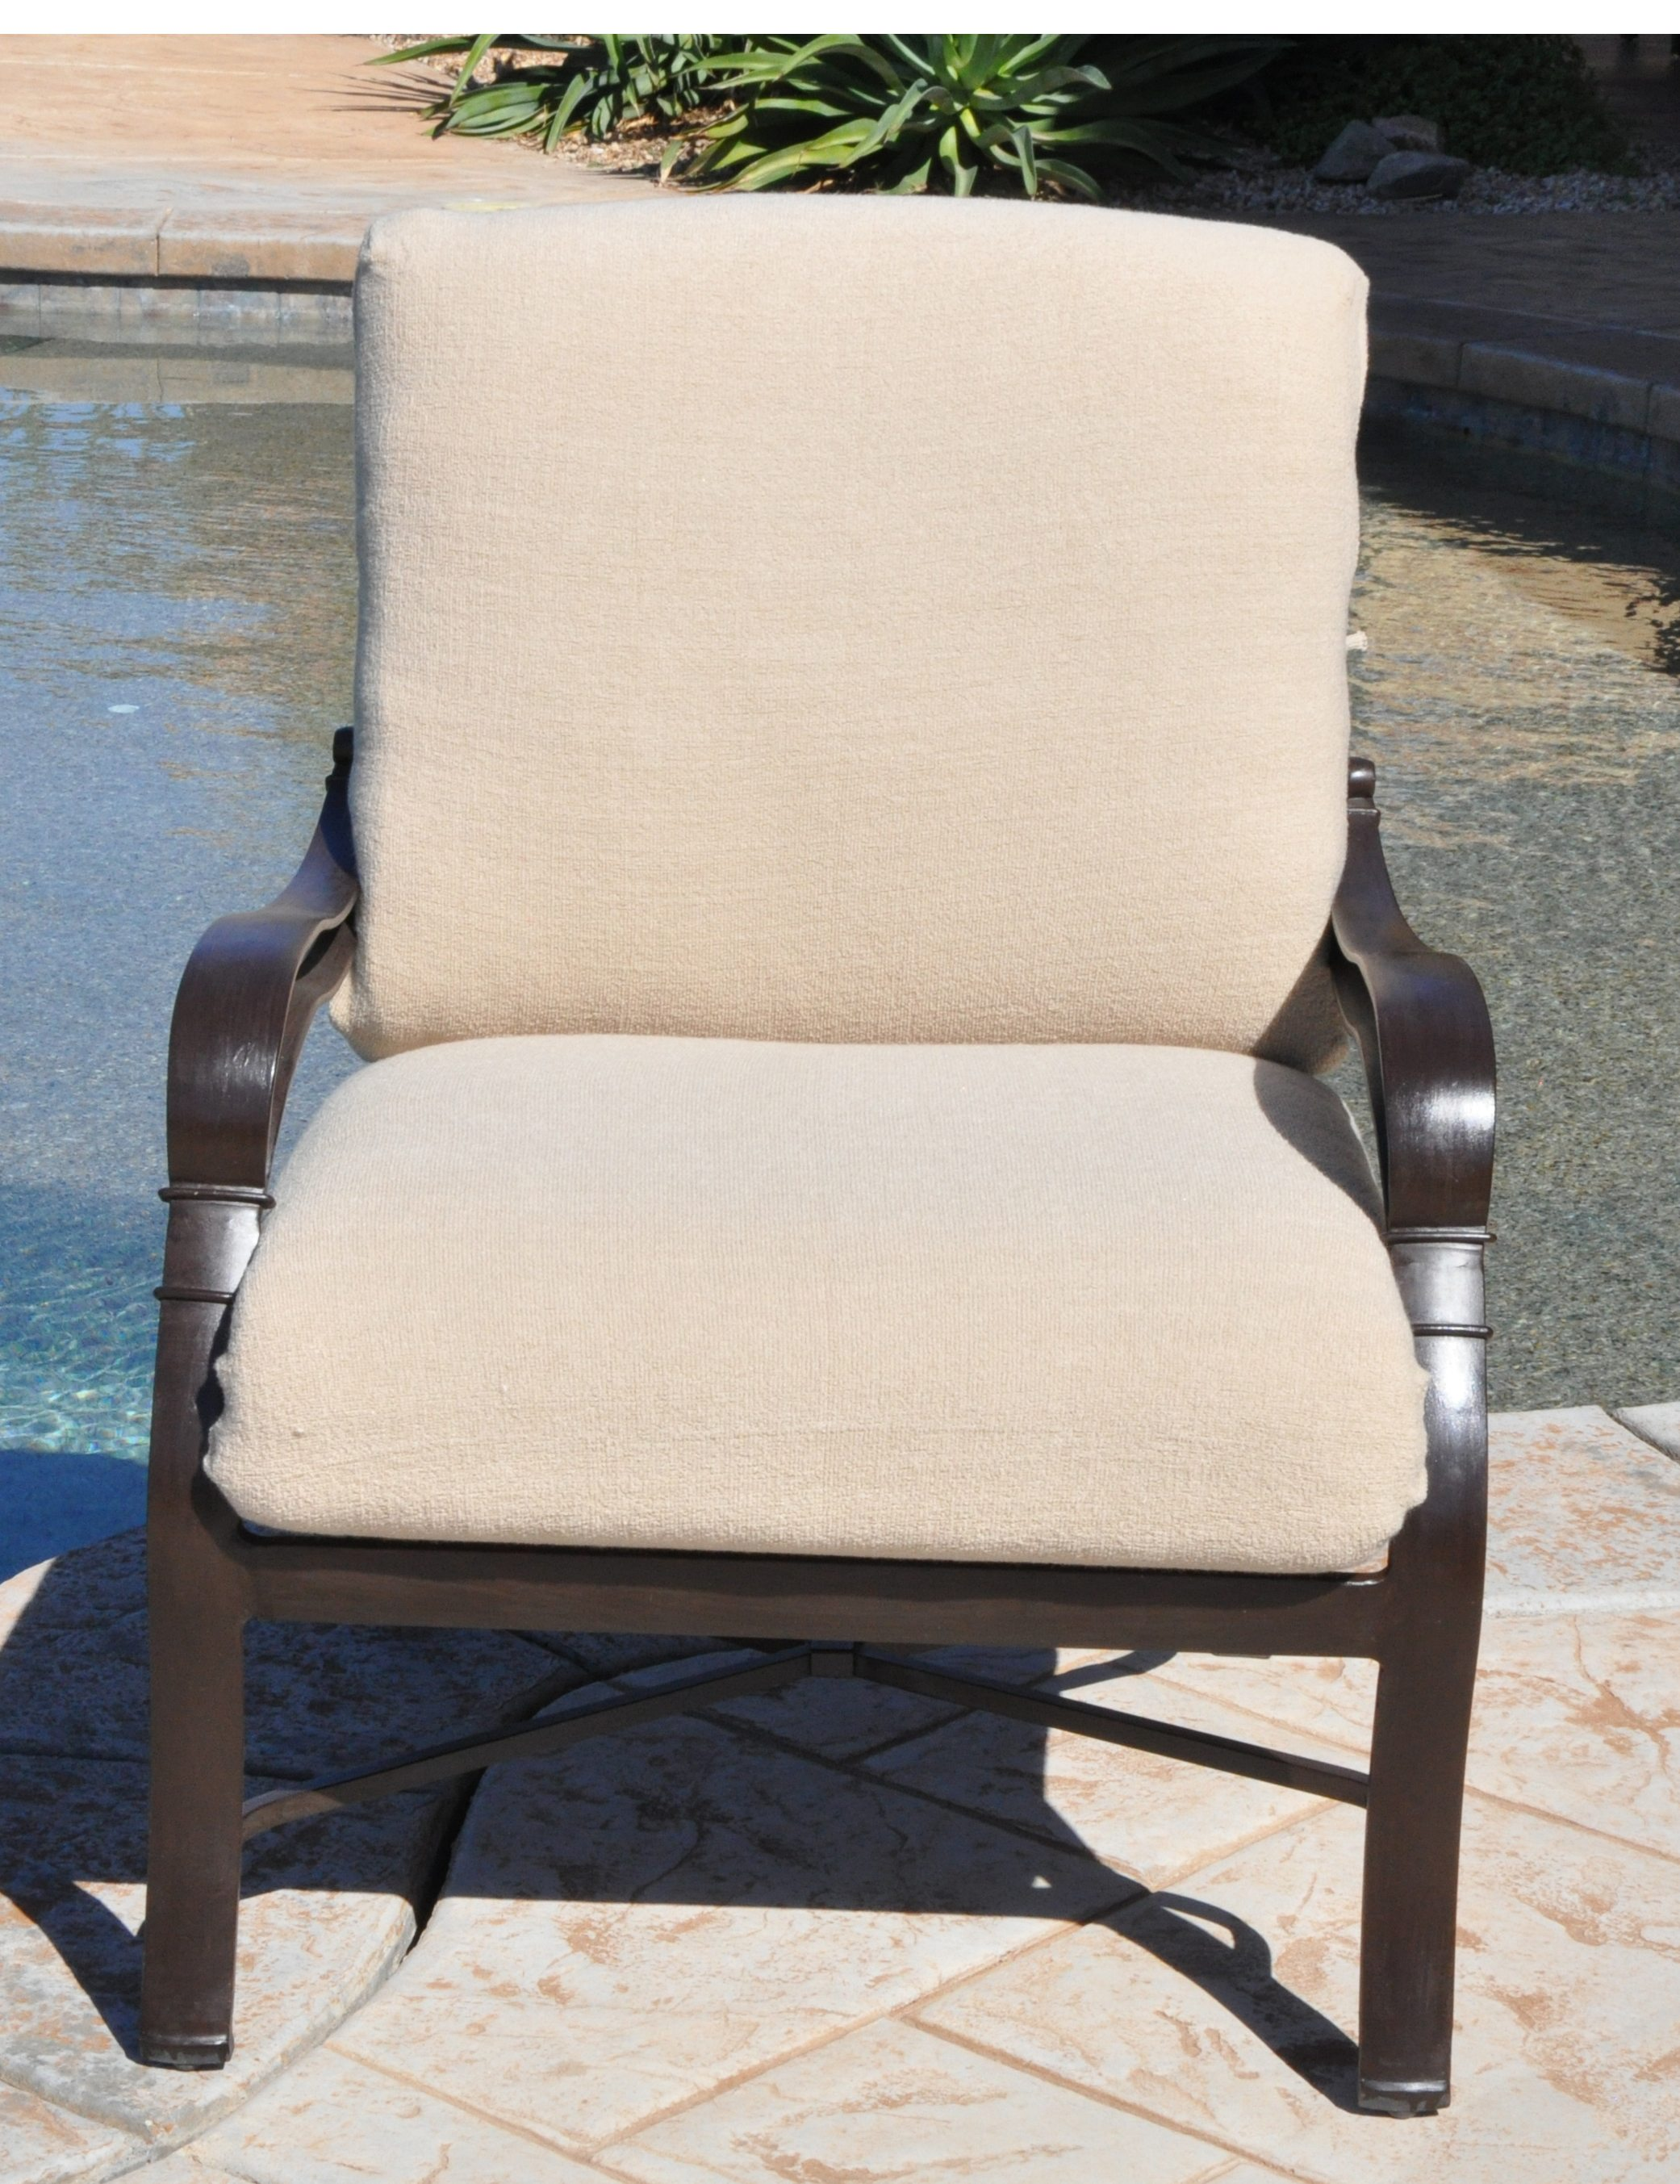 Outdoor Deep Seat Cushion Slipcovers (2 Piece) Design